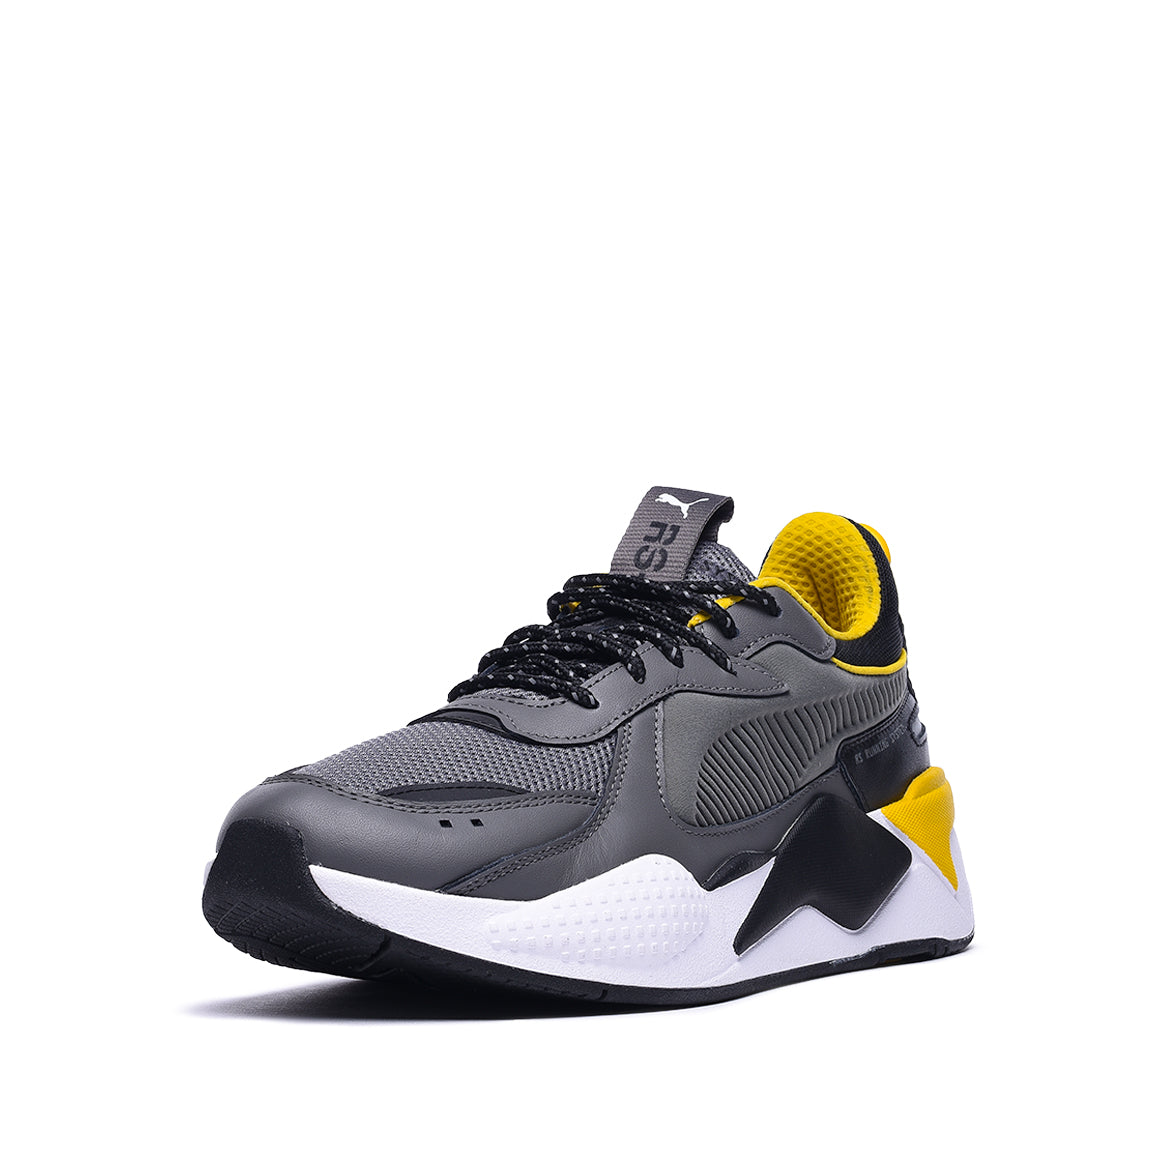 RS-X CORE - CASTLEROCK / BLACK